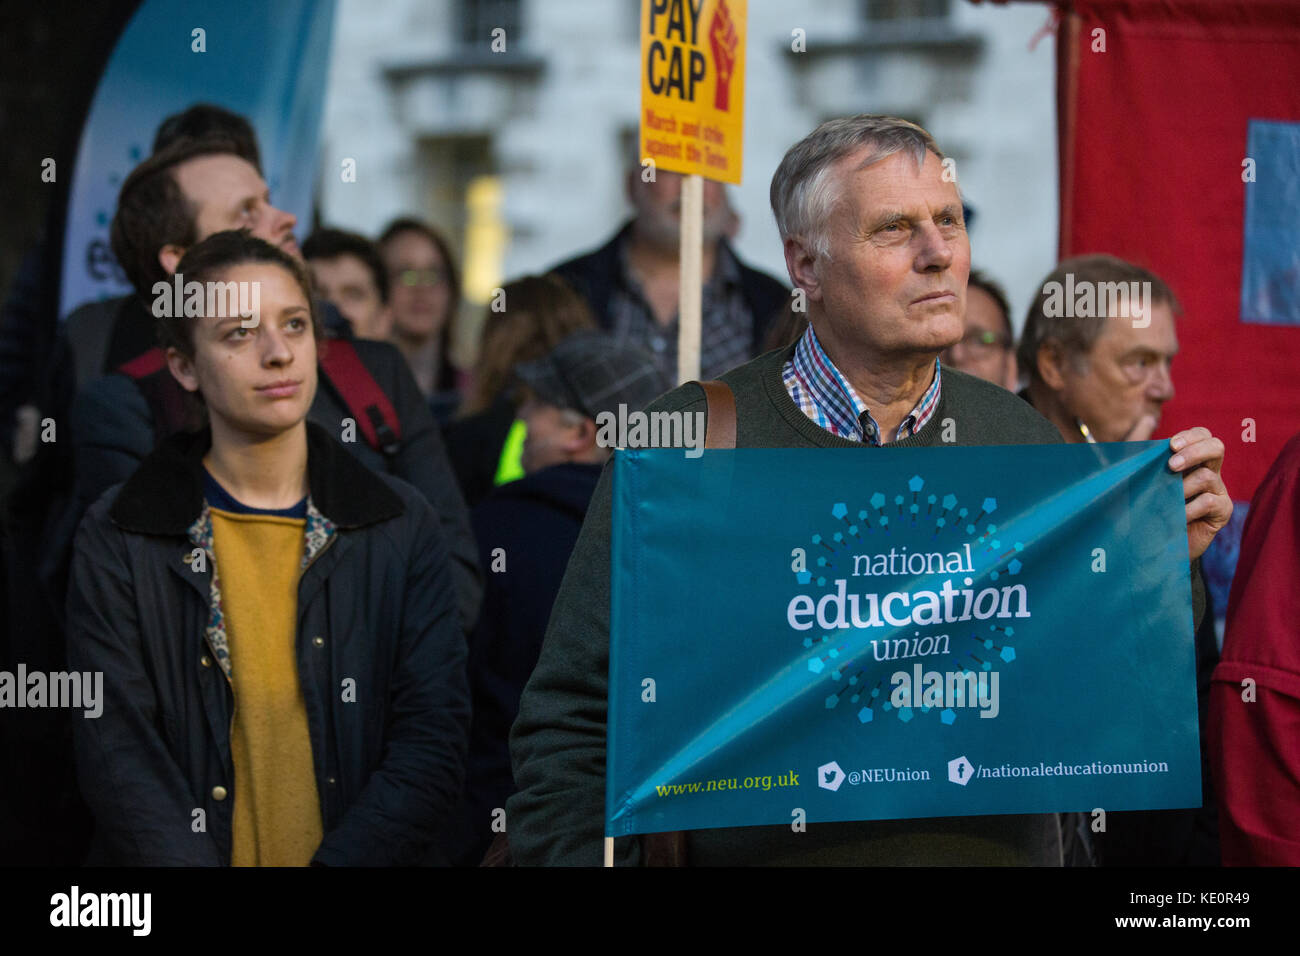 London, UK. 17th Oct, 2017. Trade union members attend a TUC rally for fair pay for public servants outside Downing - Stock Image